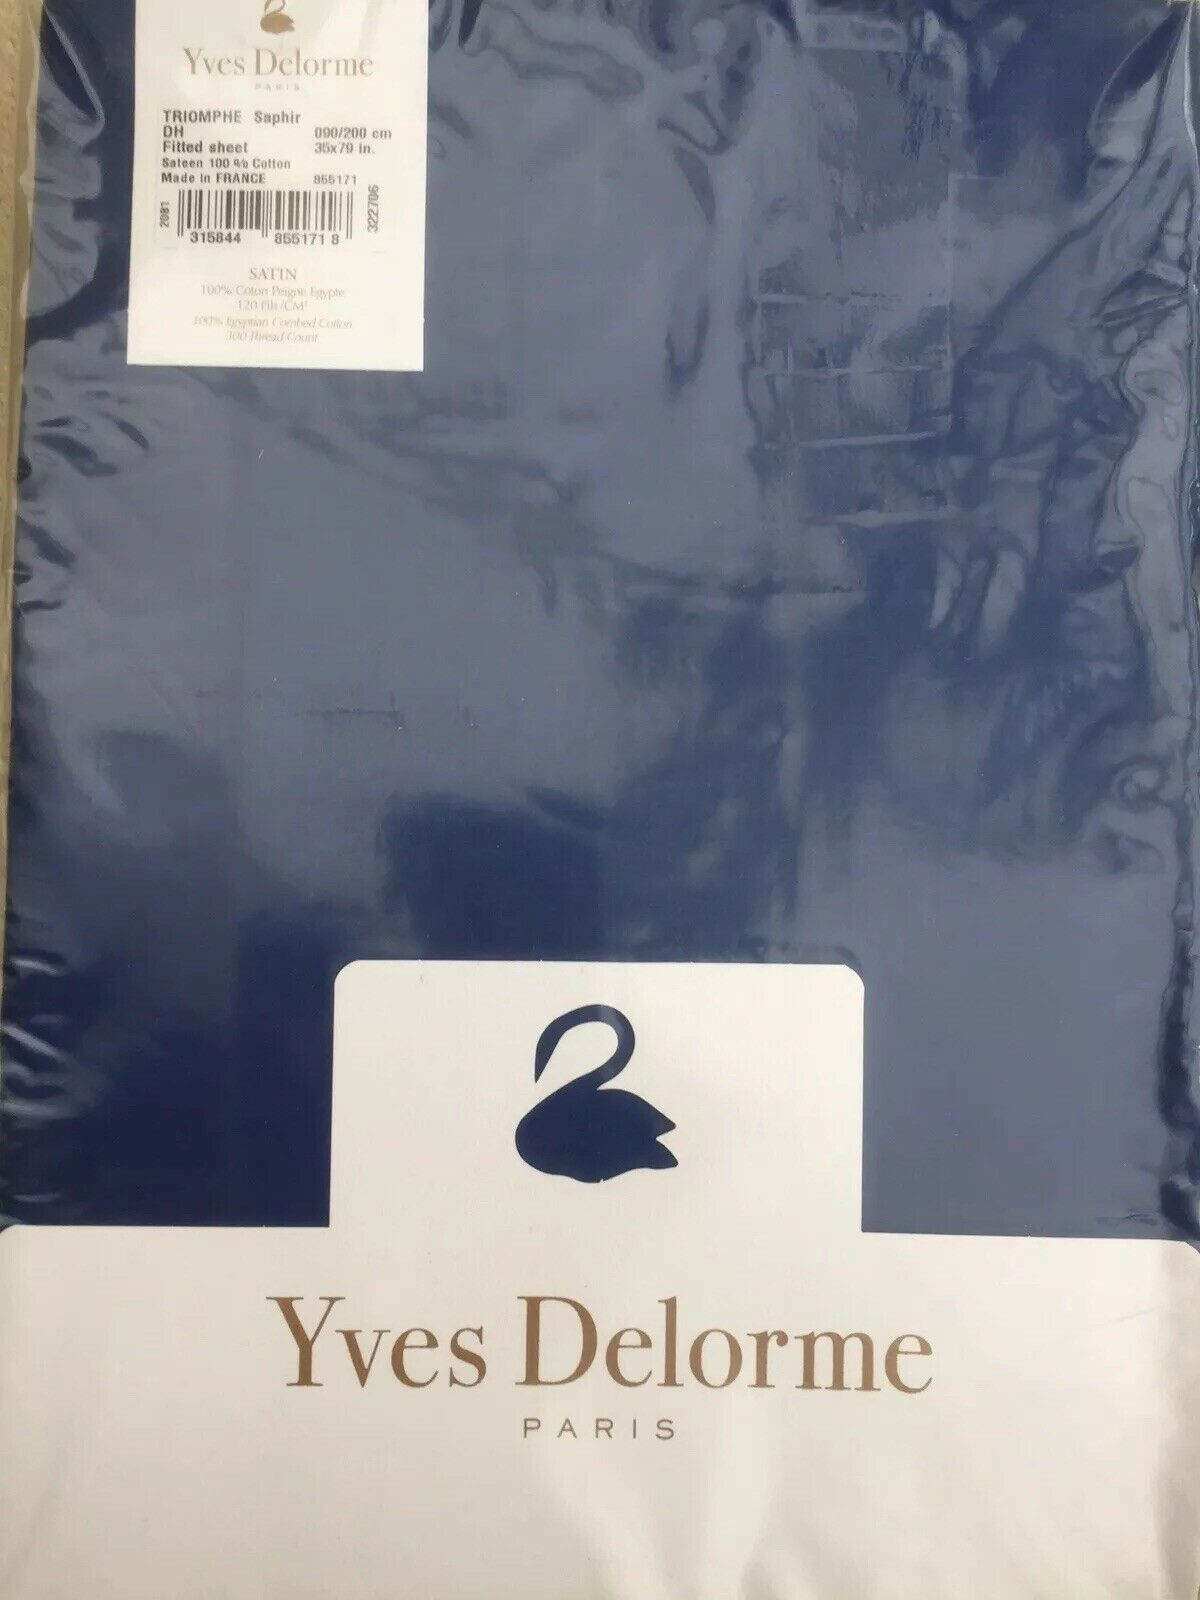 YVES DELORME TRIOMPHE SAPHIR SATIN FITTED SHEET SINGLE LUXURY 90 200 CMS